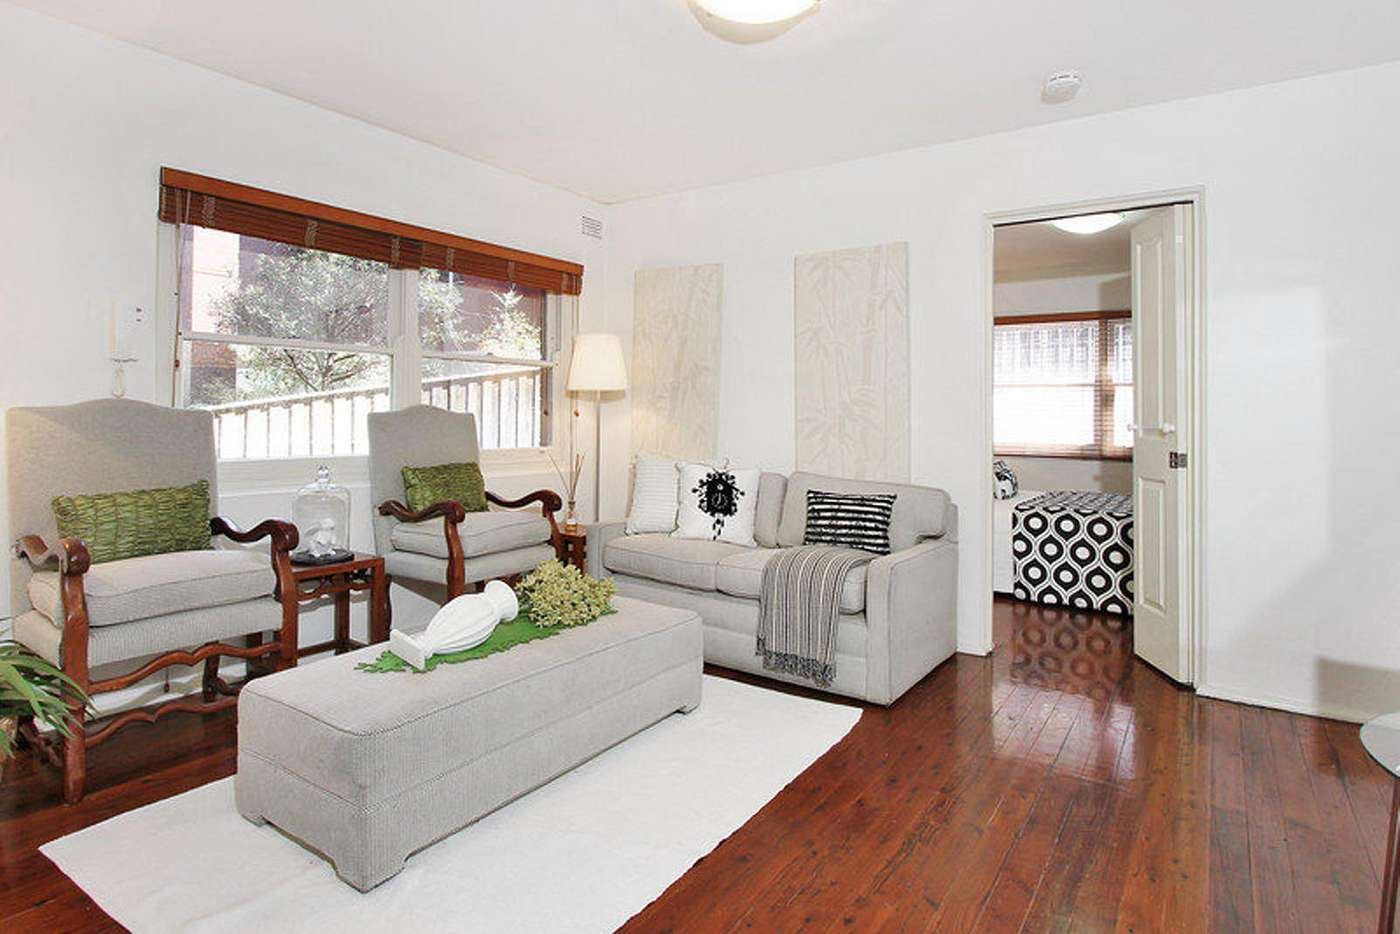 Main view of Homely apartment listing, 10/323 Alfred St, Neutral Bay NSW 2089